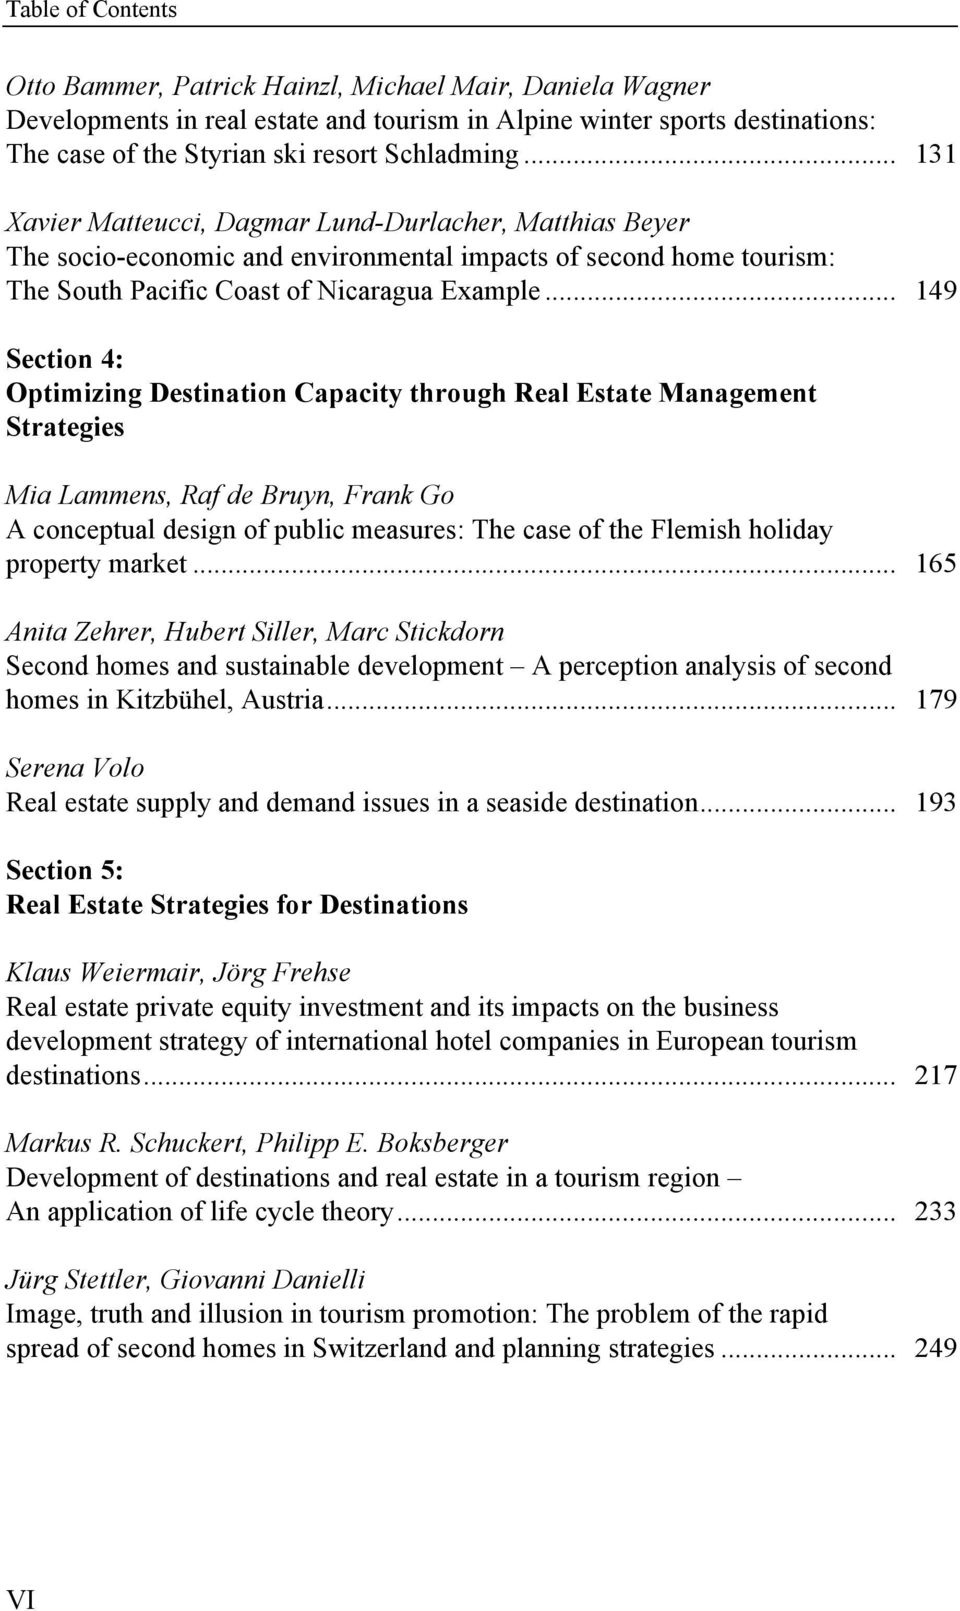 .. 149 Section 4: Optimizing Destination Capacity through Real Estate Management Strategies Mia Lammens, Raf de Bruyn, Frank Go A conceptual design of public measures: The case of the Flemish holiday